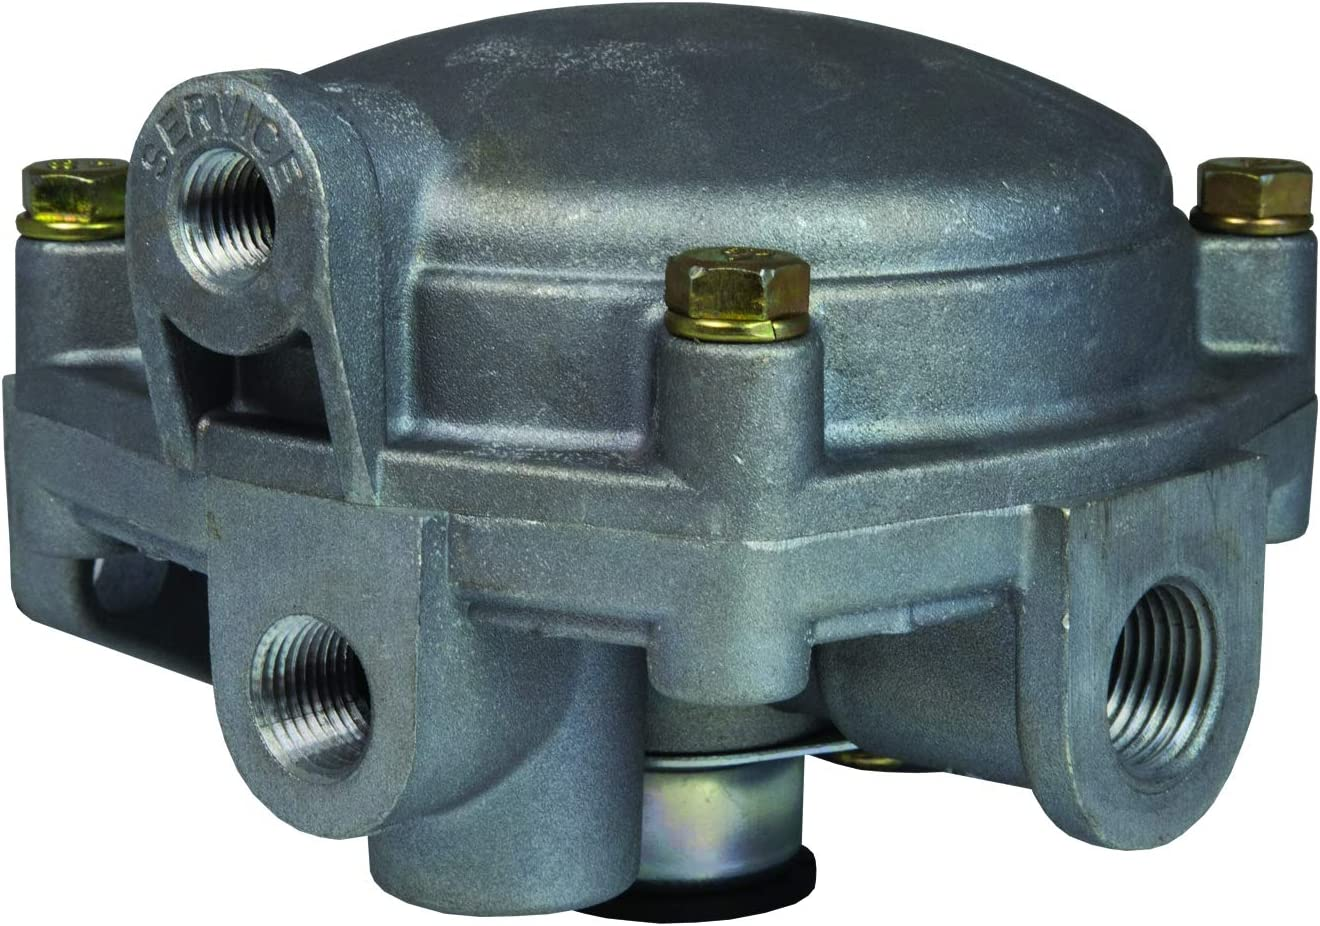 Relay Valve Model All stores are sold 6 1 2 - Cheap super special price Supply Inches